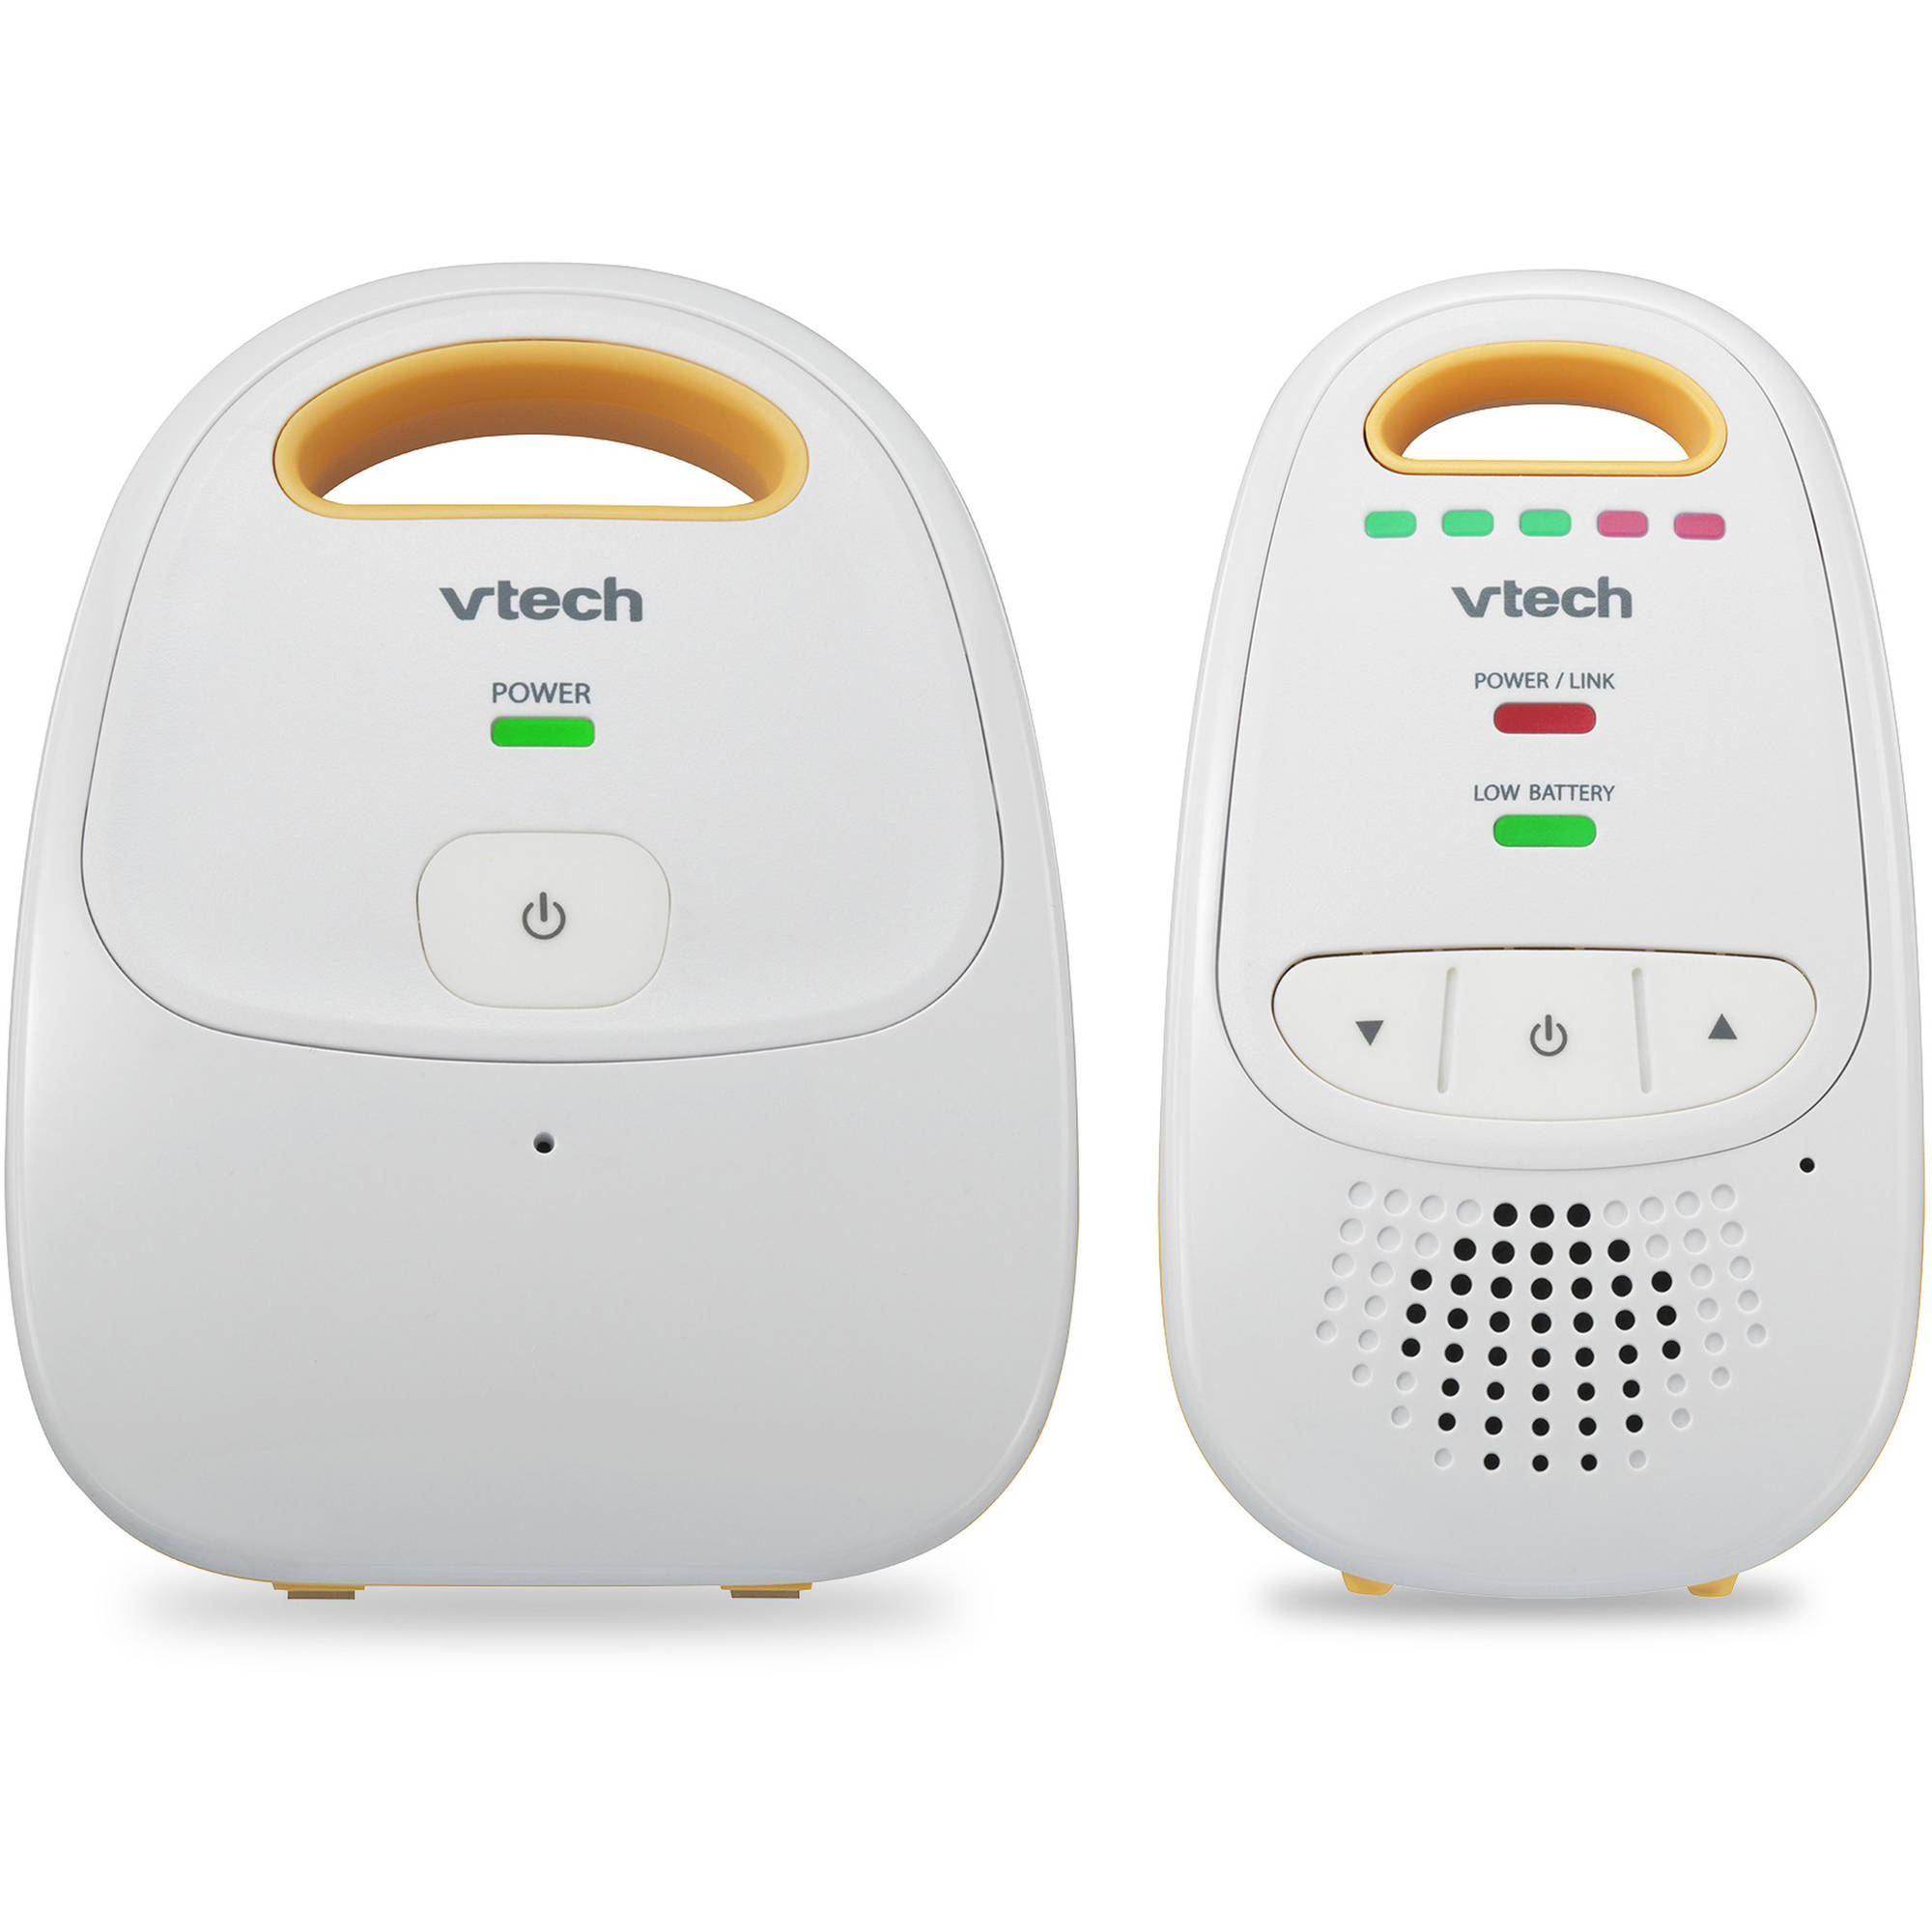 VTech DM111, Digital Audio Baby Monitor, DECT 6.0, Belt Clip